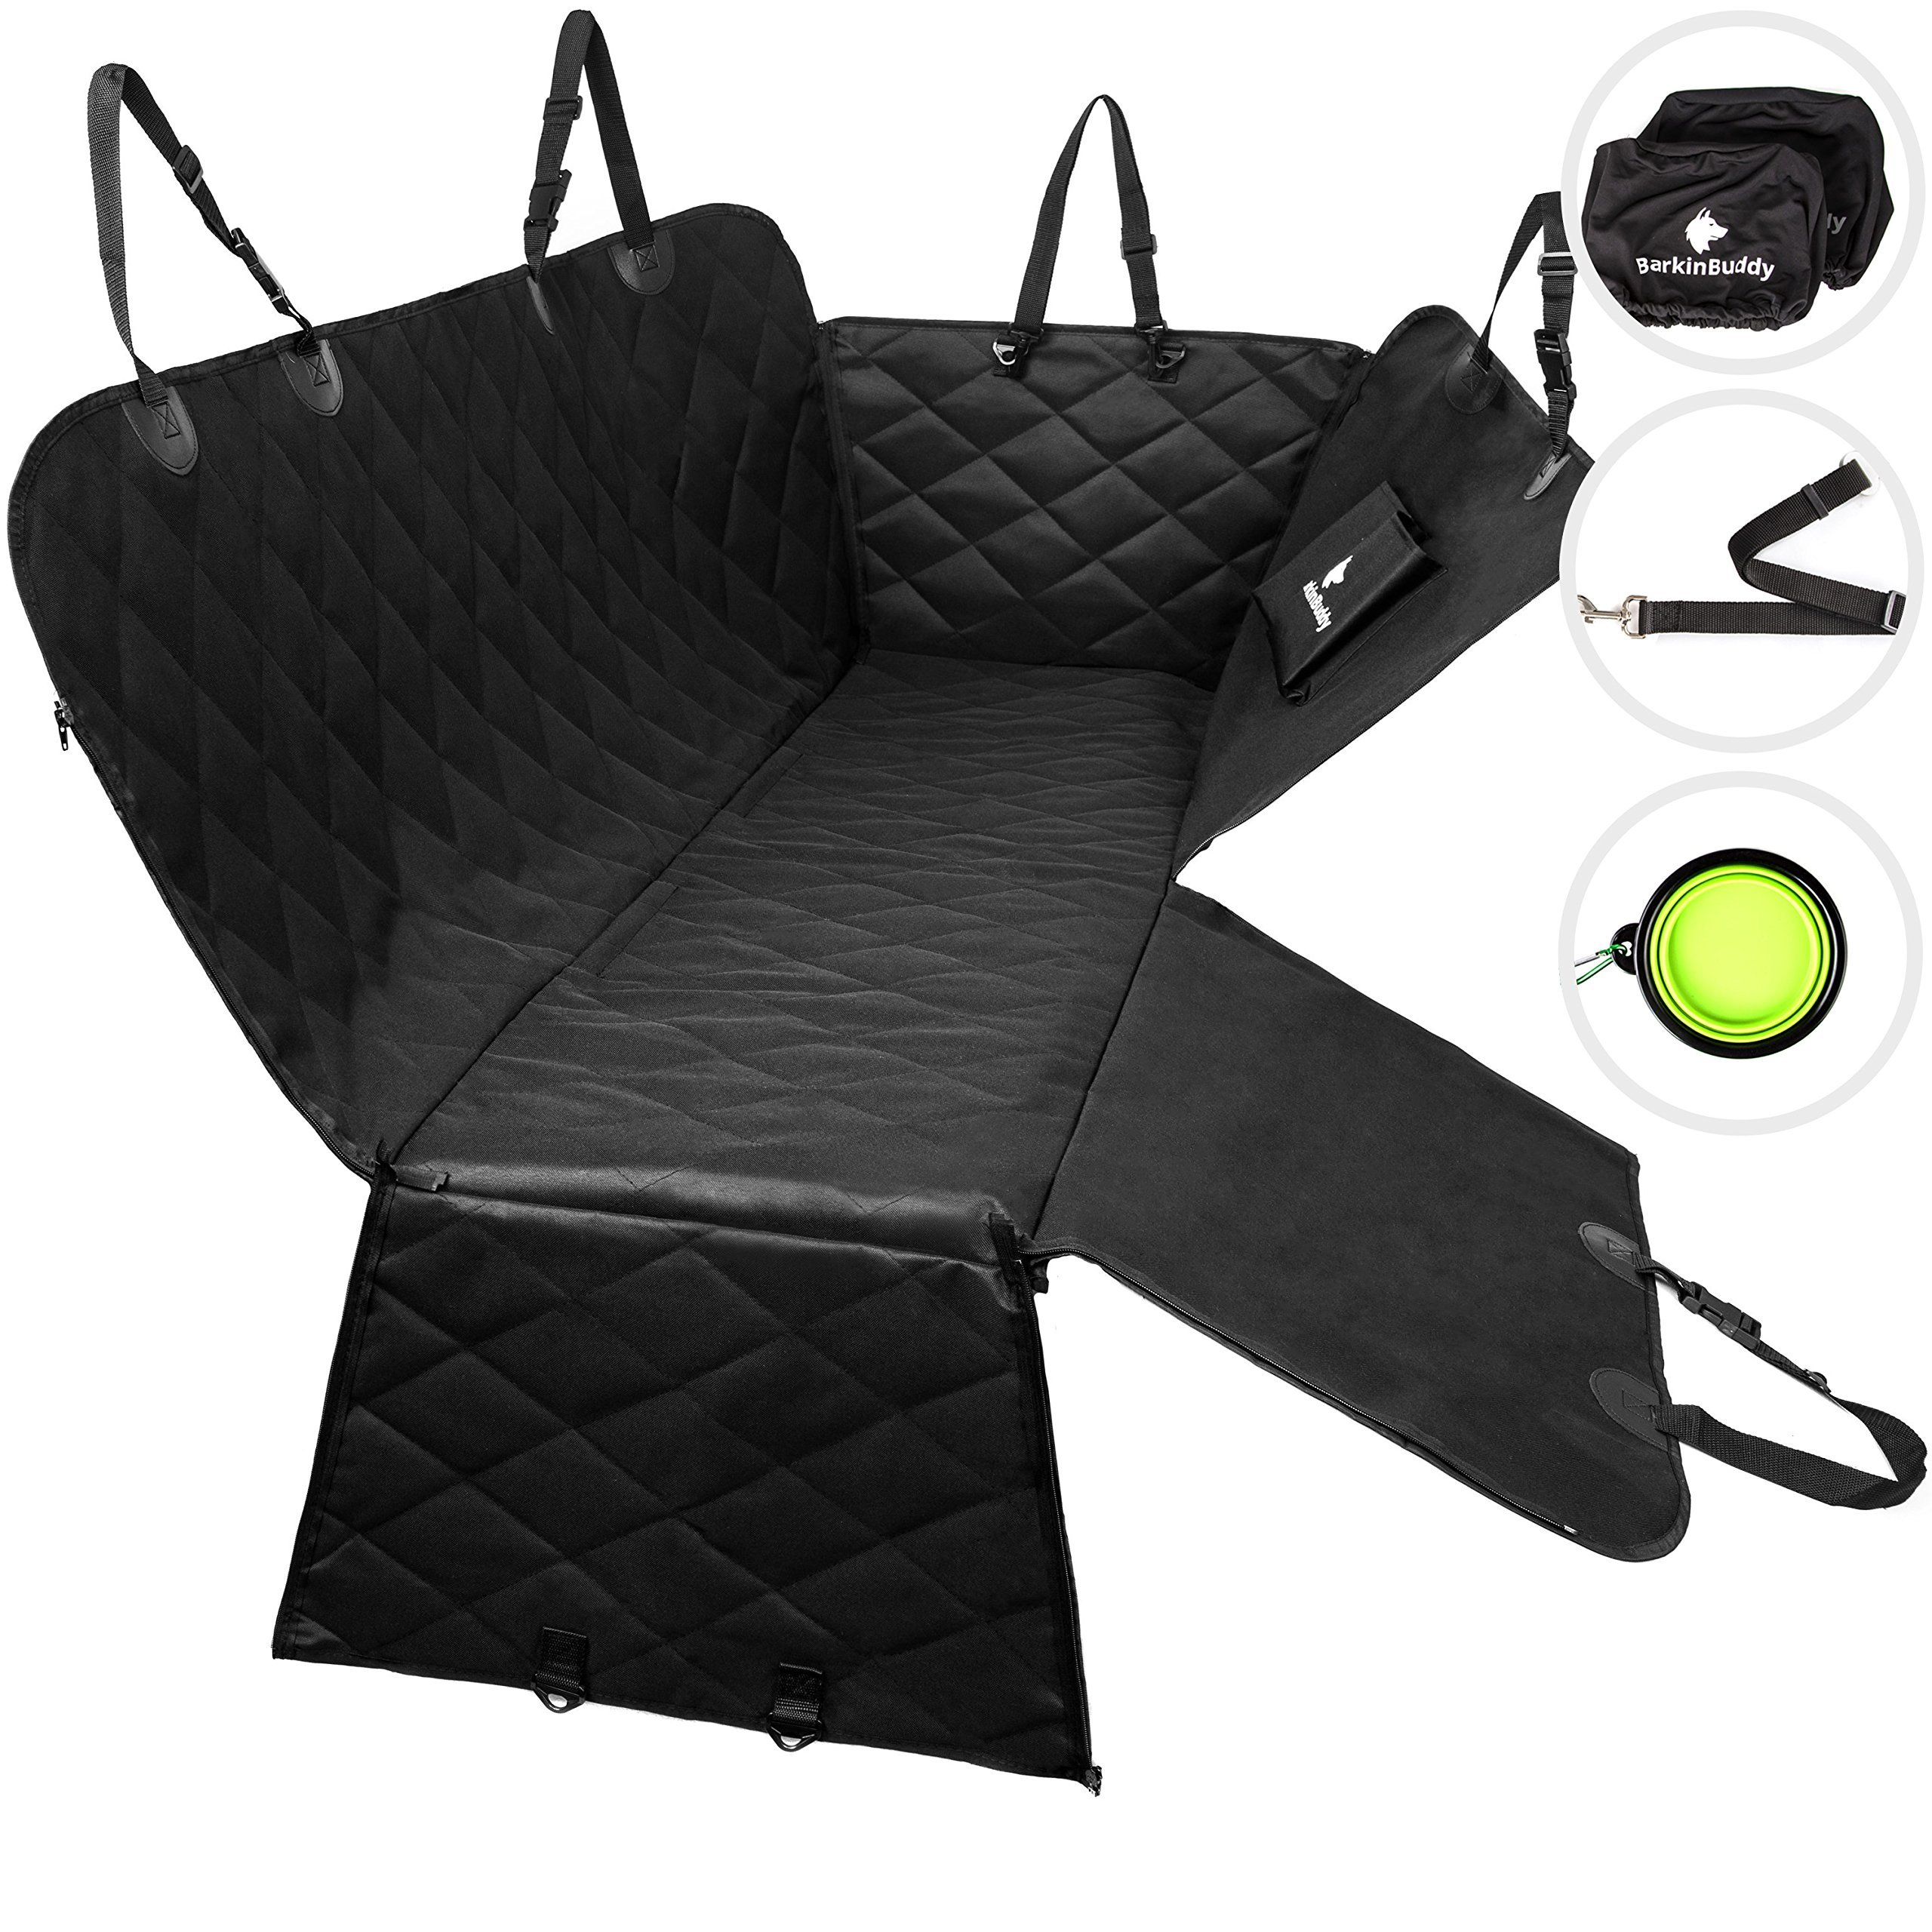 Dog Seat Cover for Back Seat - Backseat Dog Cover with Full-Size Door Protector from Dog Scratching - Dog Car Hammock for Car, SUV, Truck with 2 Headrest Covers, Collapsible Bowl, Dog Seat Belt